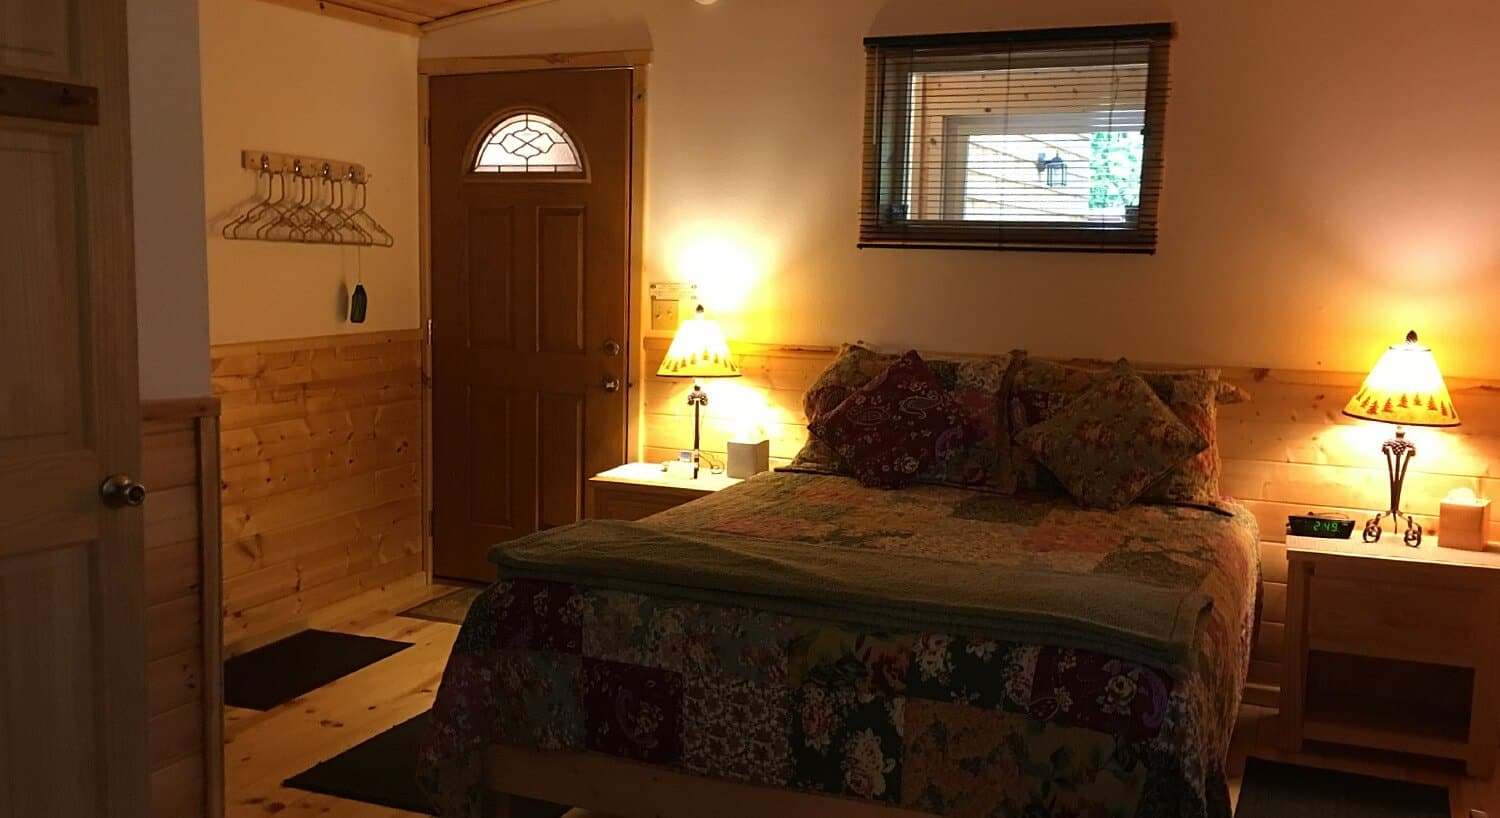 Cabin guestroom with queen bed, colorful quilt, bed stands with lamps and wood floors